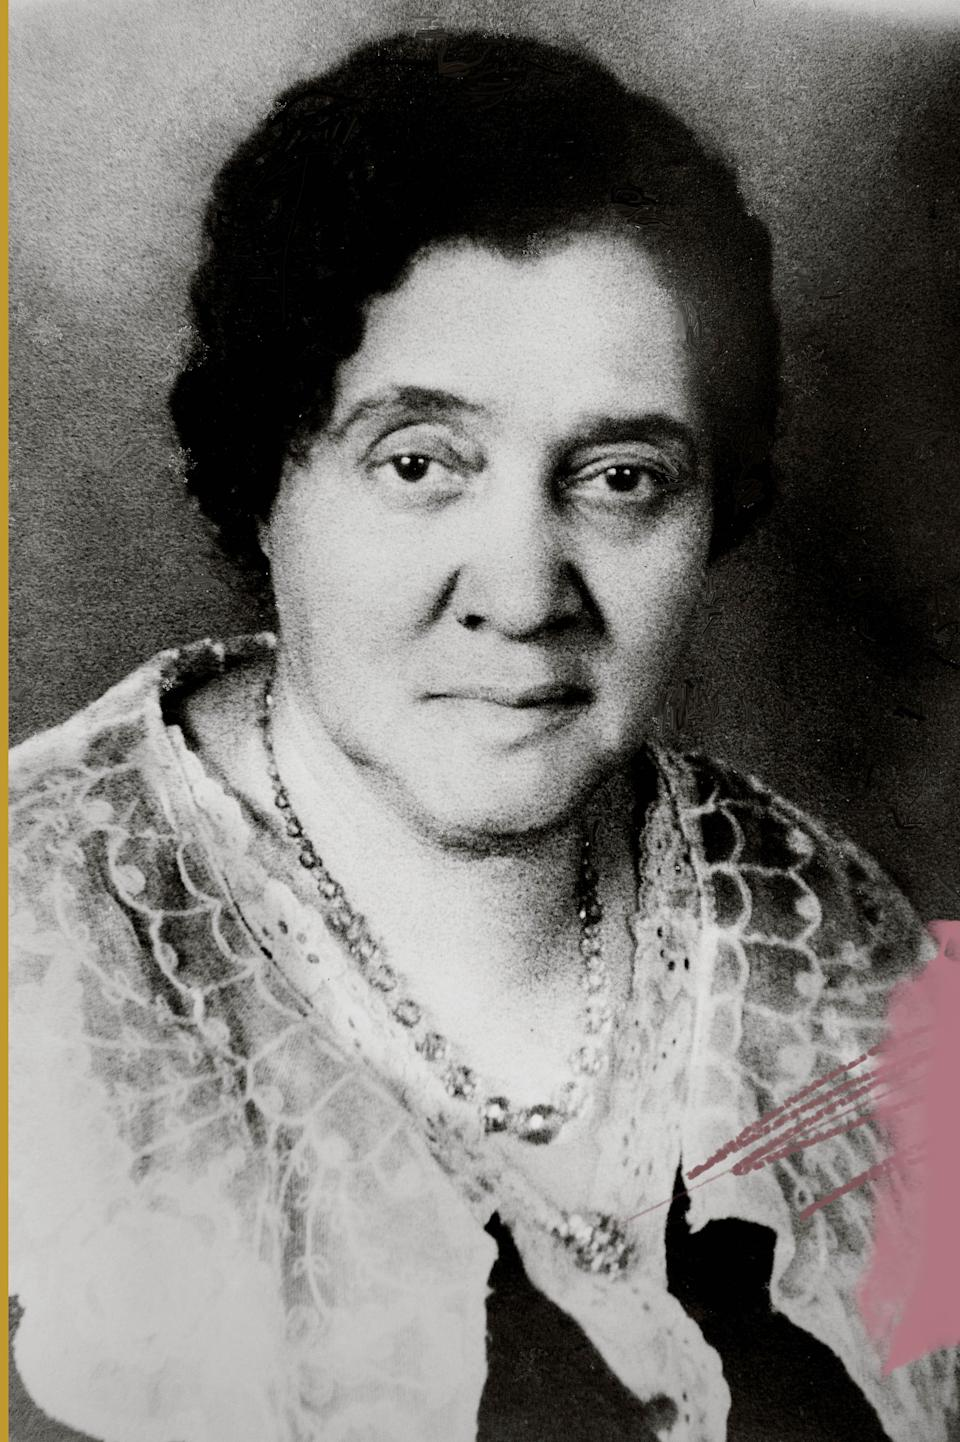 Juno Frankie Pierce was one of the leaders involved in Tennessee's ratification of the 19th Amendment in 1920.